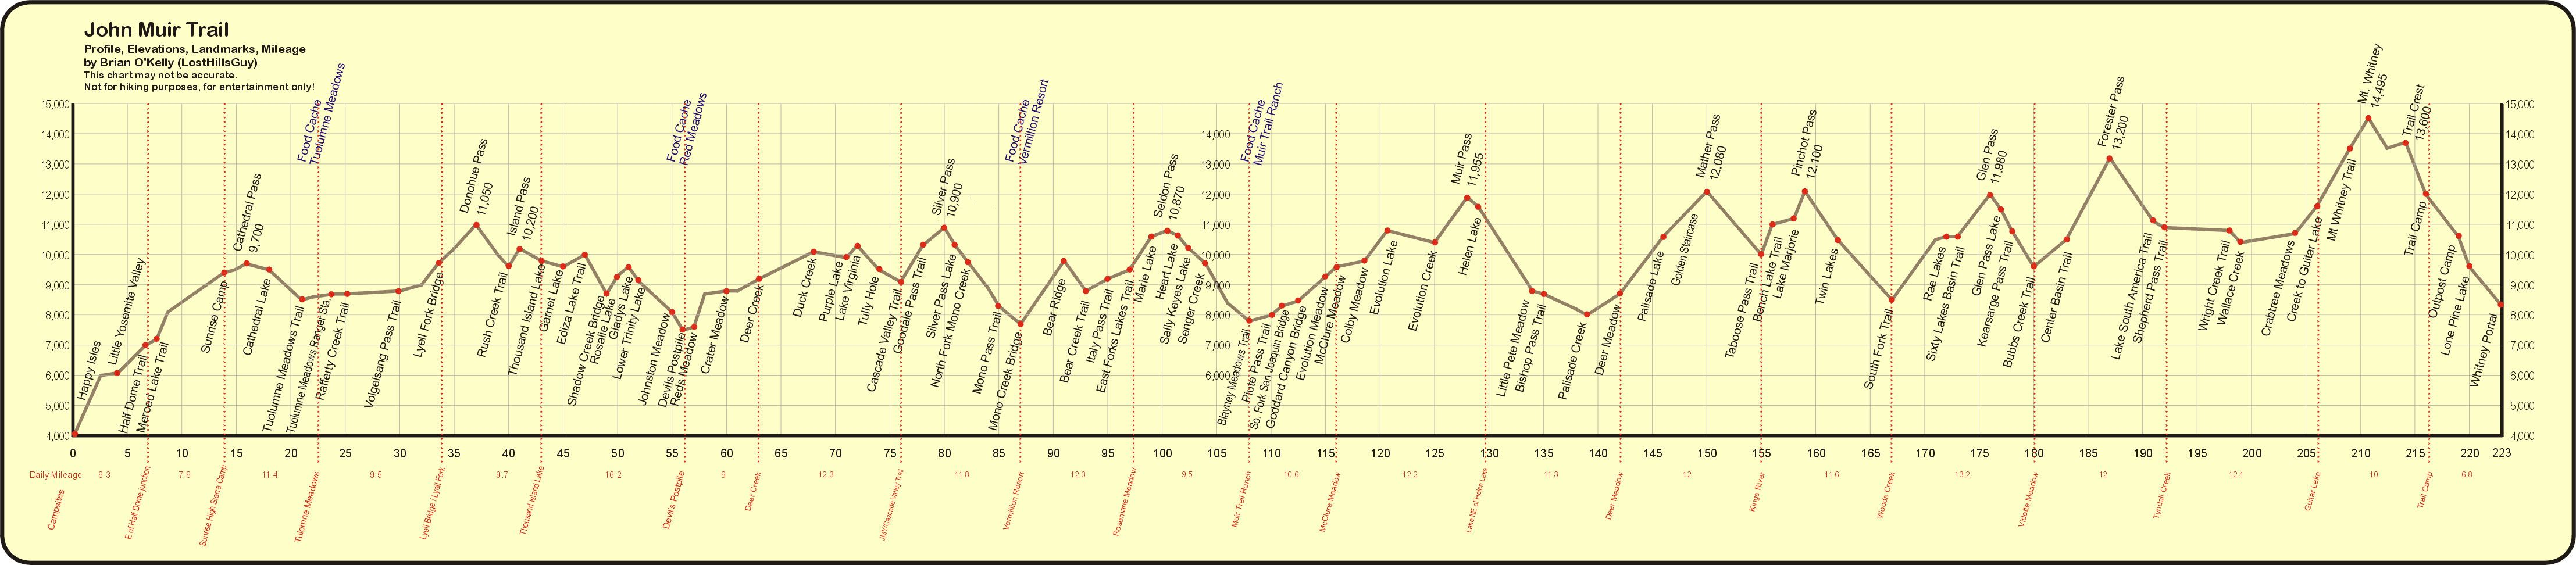 Chilkoot Trail Elevation Map.John Muir Trail Elevation Profile Graphic Just Print This Out And